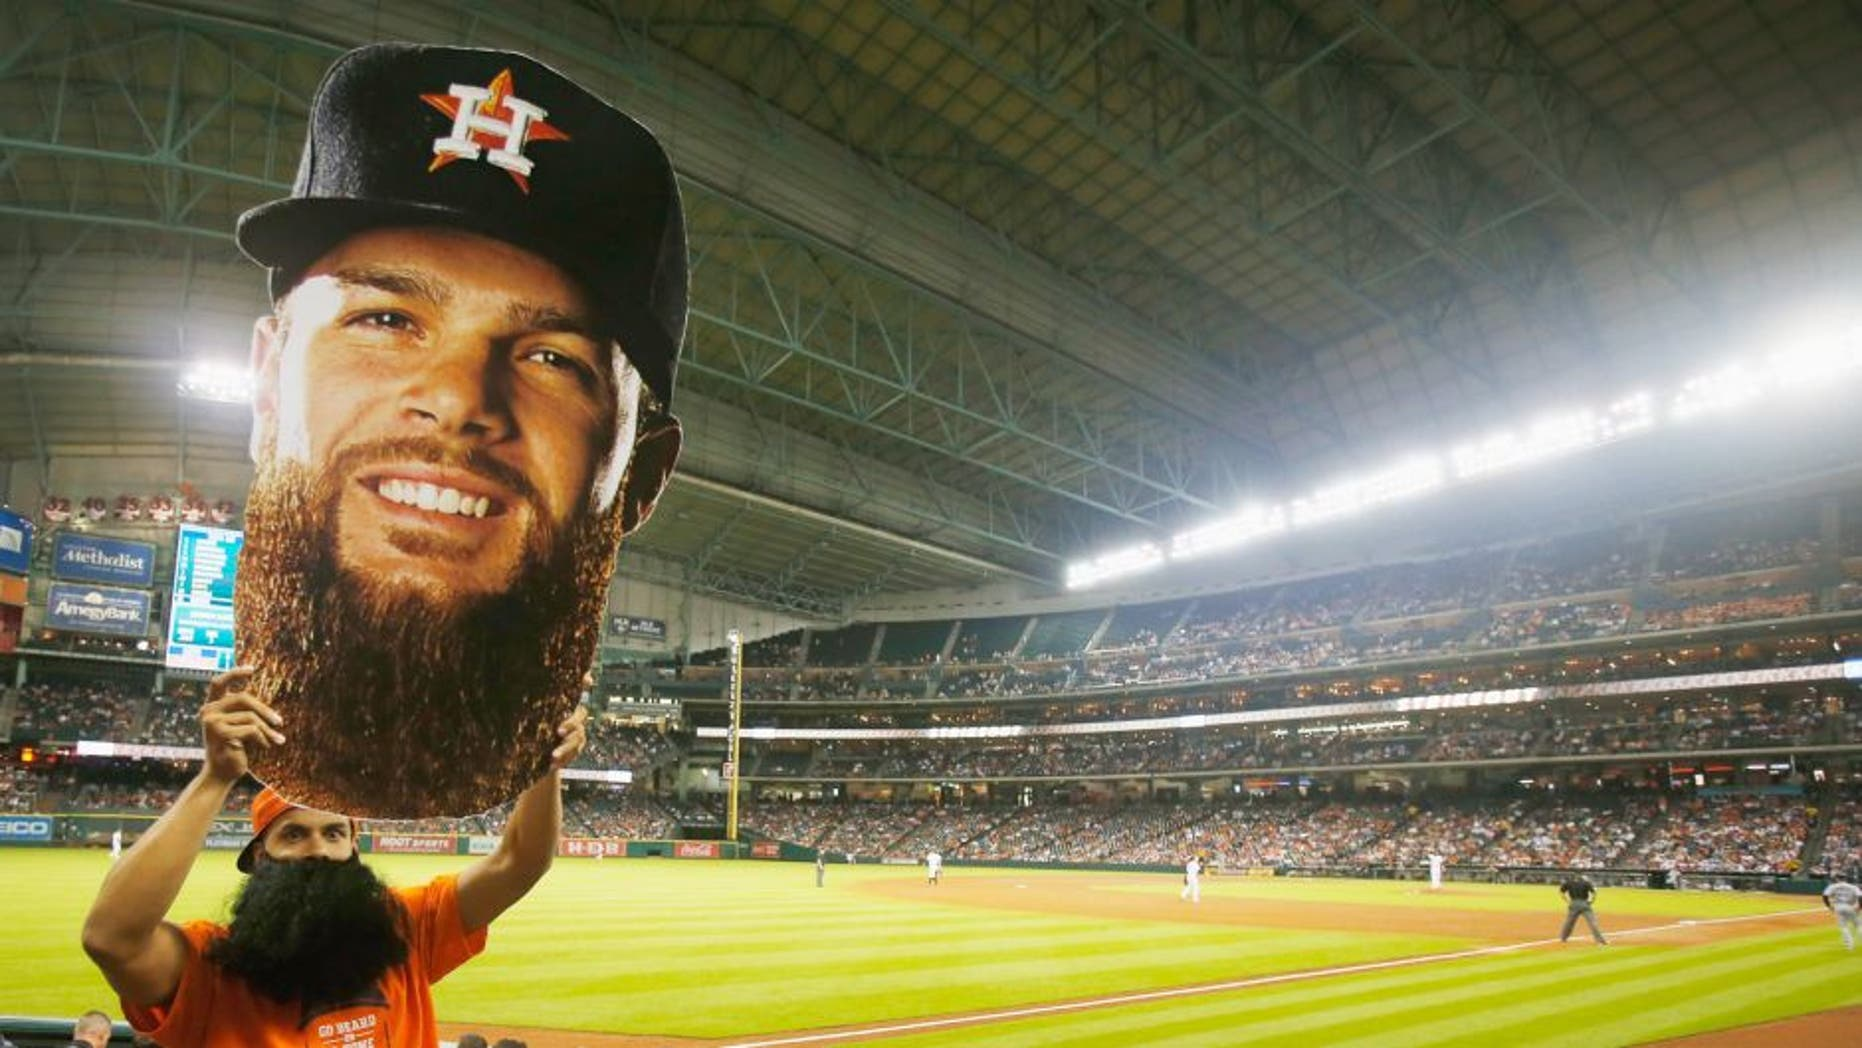 HOUSTON, TX - AUGUST 19: A Dallas Keuchel fan cheers in left field during the fifth inning of the game between the Houston Astros and the Tampa Bay Rays at Minute Maid Park on August 19, 2015 in Houston, Texas. (Photo by Scott Halleran/Getty Images)